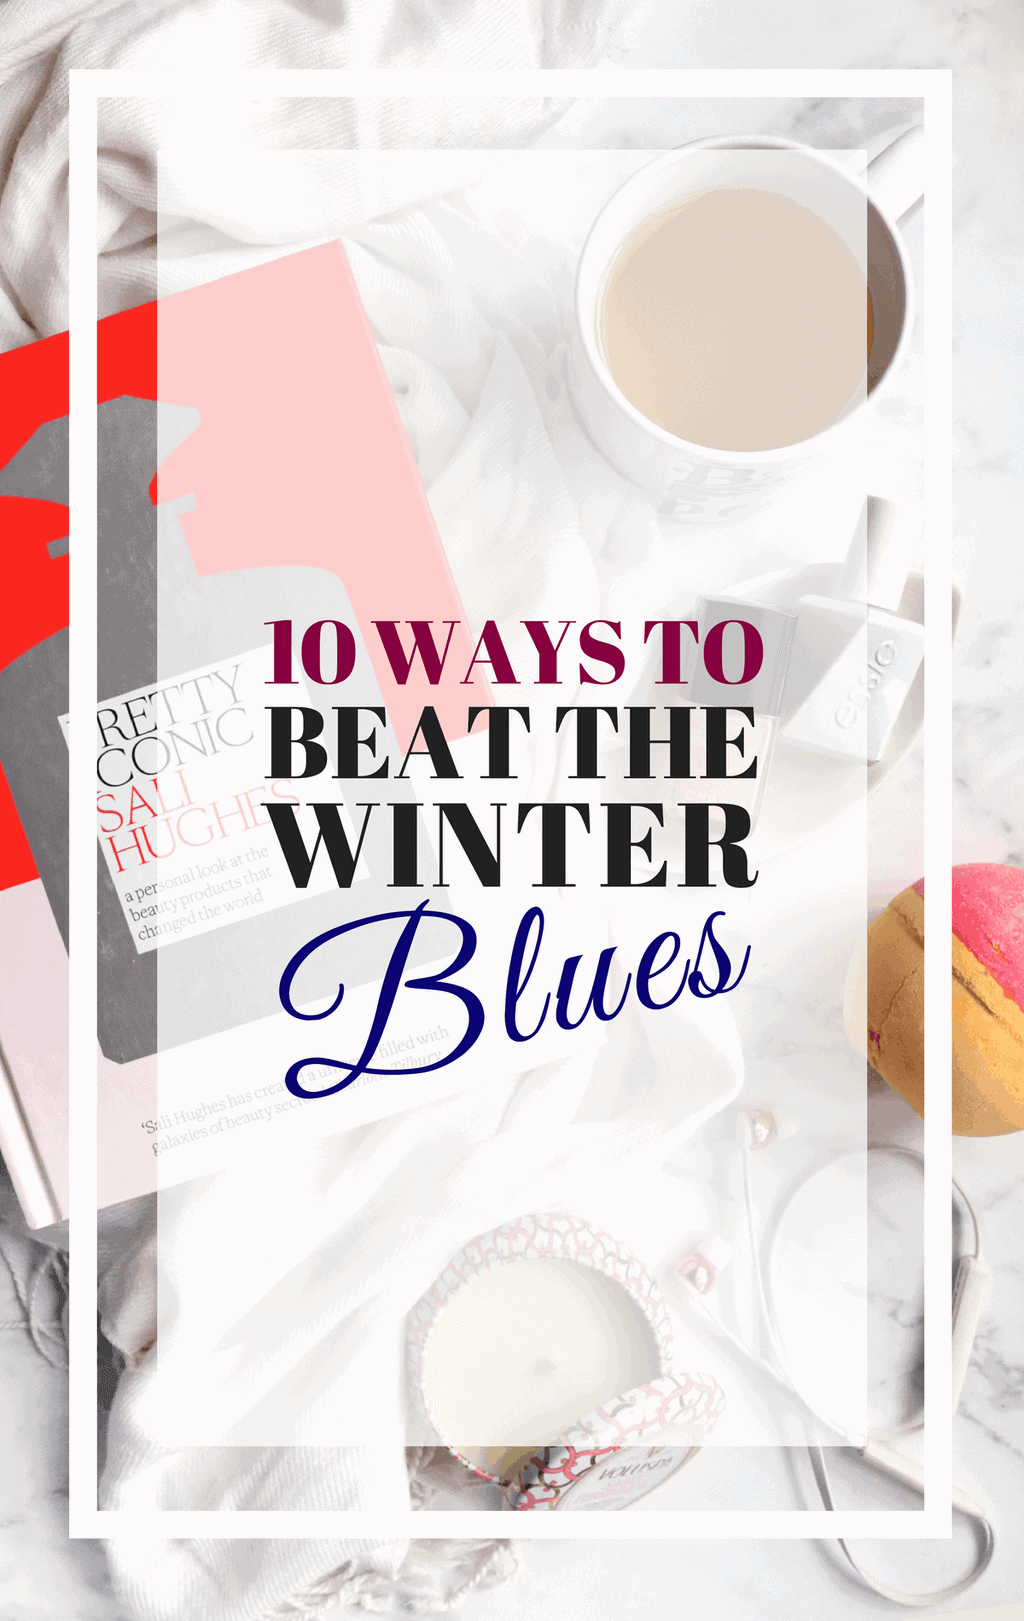 10 Ways to beat the winter blues